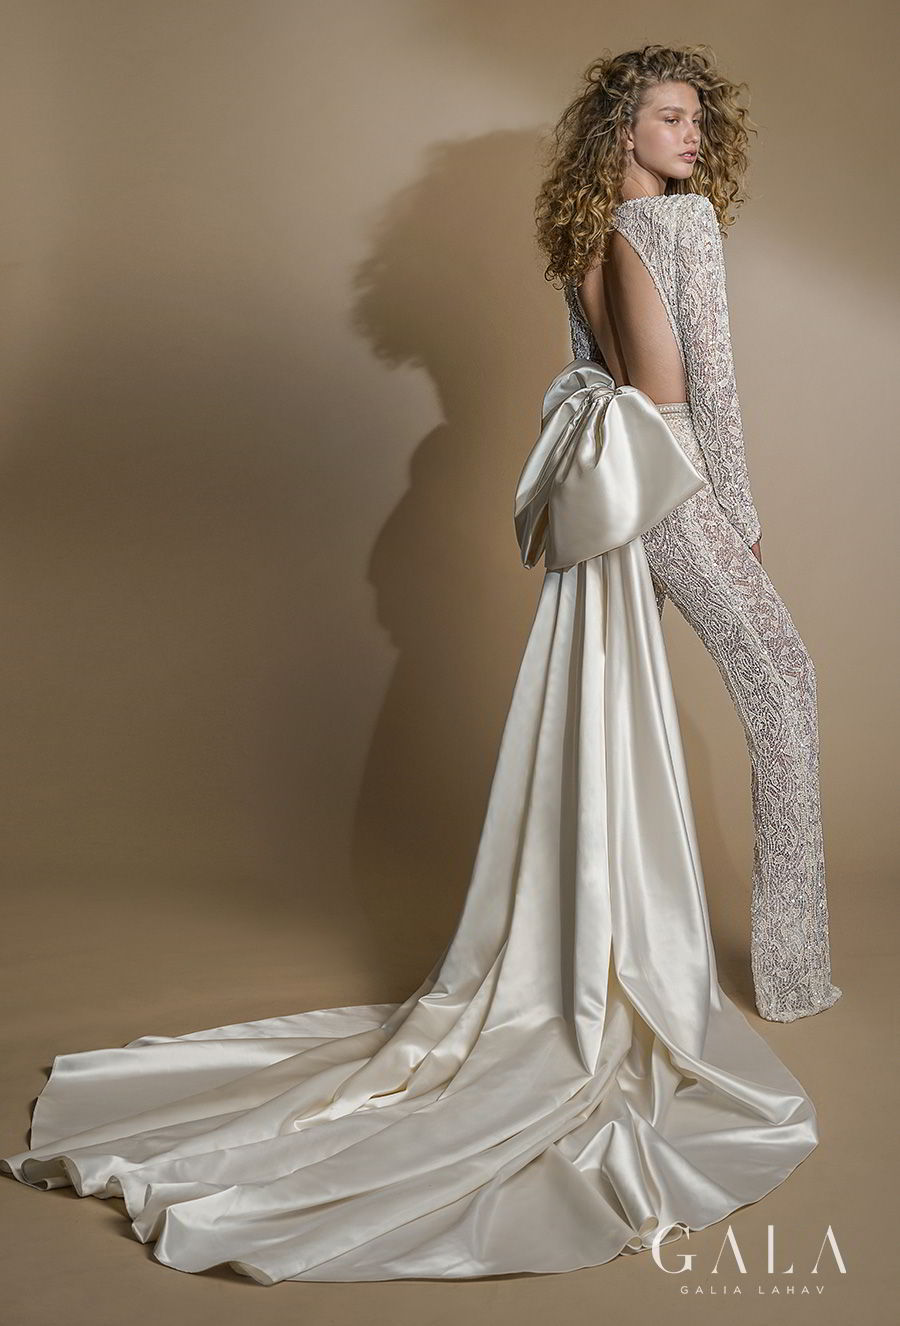 galia lahav gala 2019 bridal long sleeves deep plunging v neck full embellishment glamorous modern sexy chic jumpsuit wedding dress keyhole back chapel train (109) bv